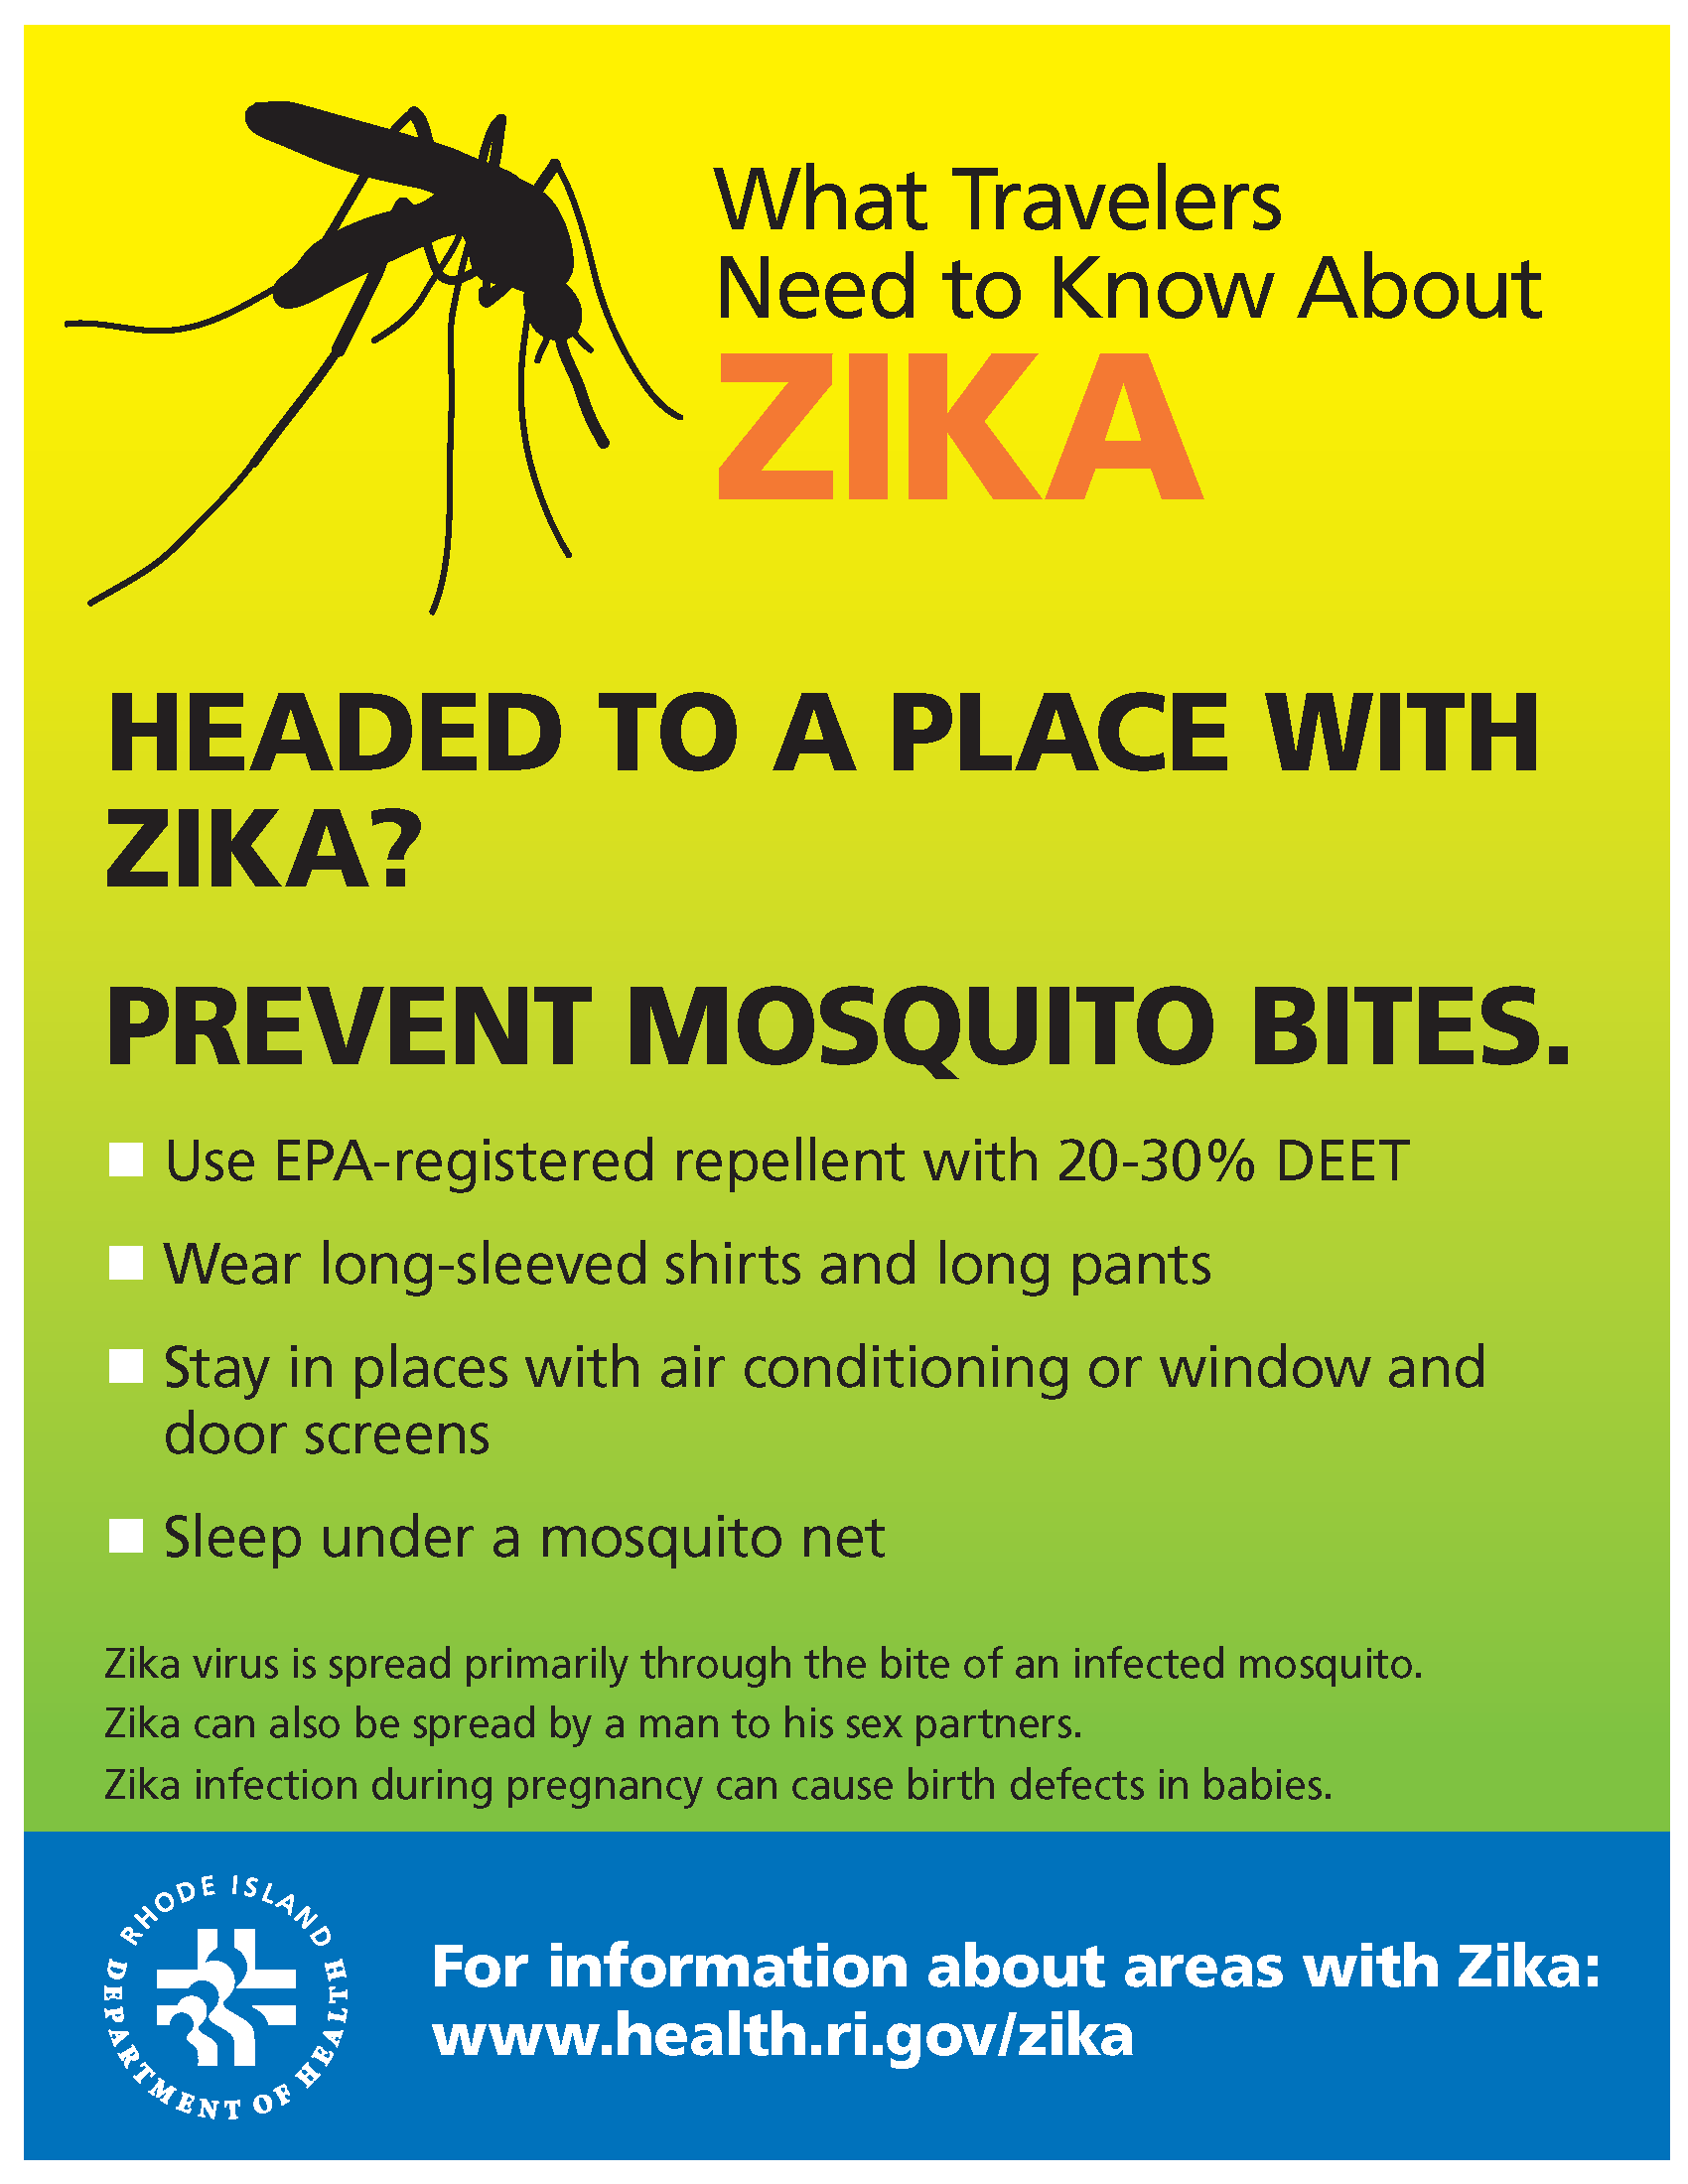 What Departing Travelers Need To Know About Zika